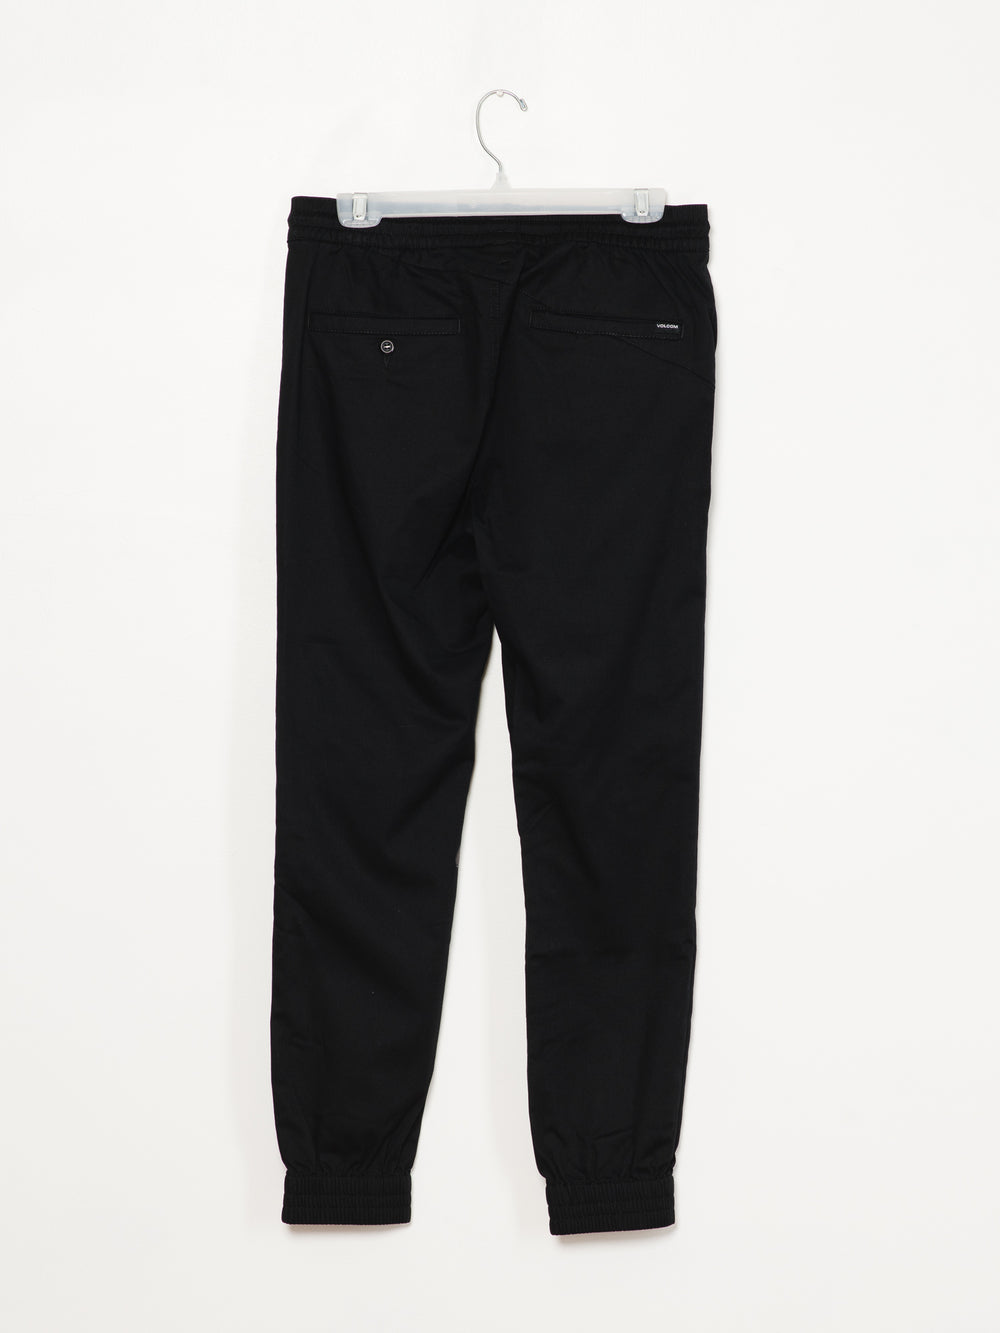 MENS FRICKIN SLIM JOGGER - BLACK